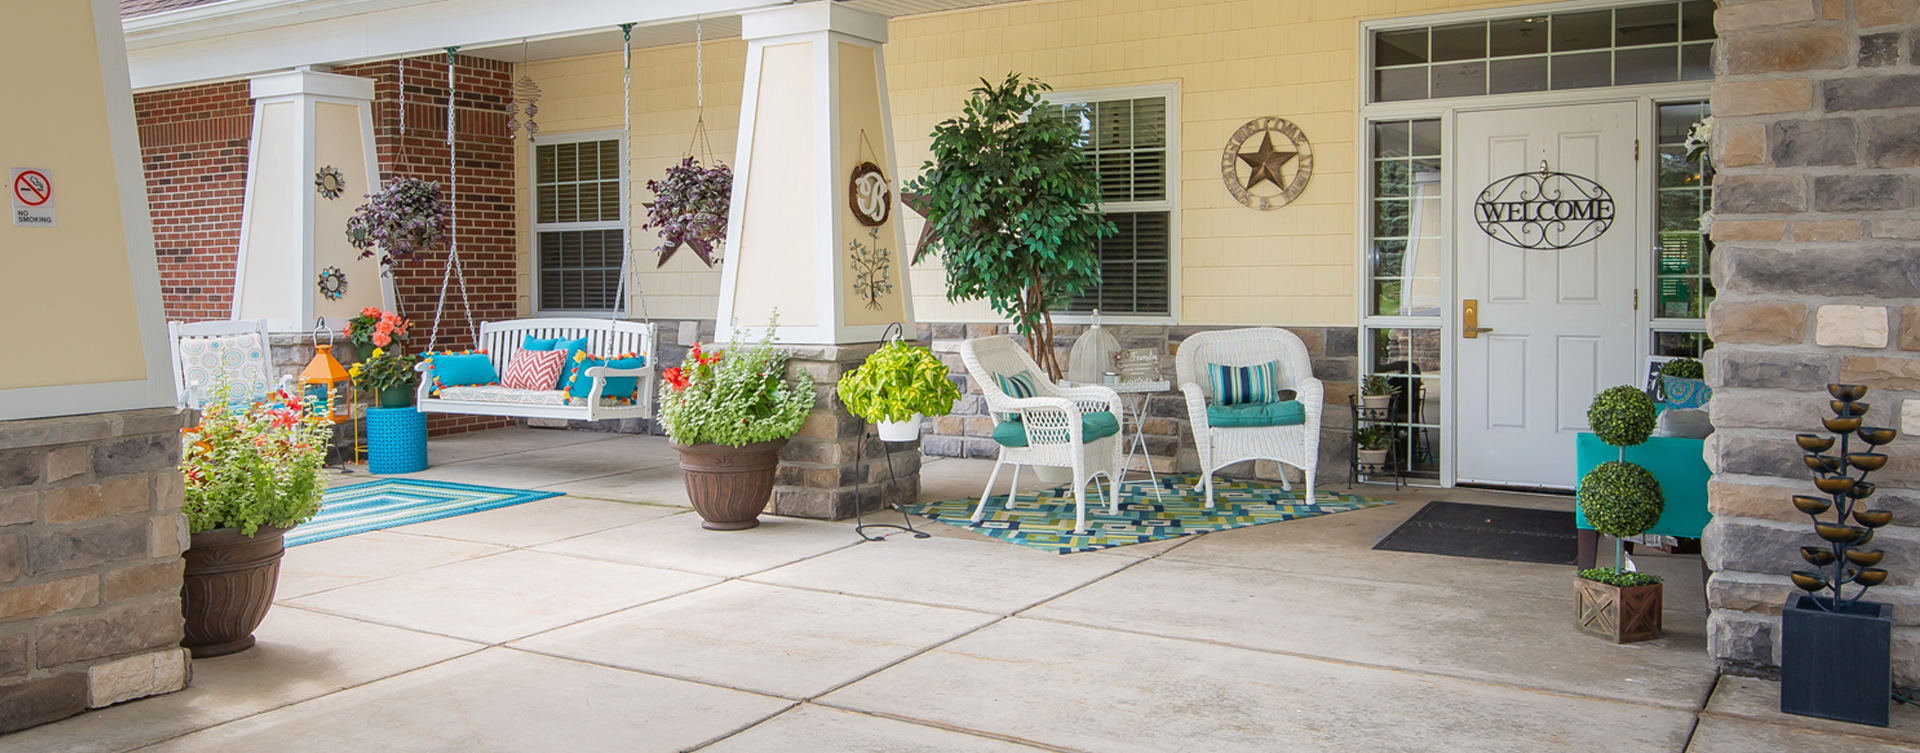 Enjoy conversations with friends on the porch at Bickford of Portage